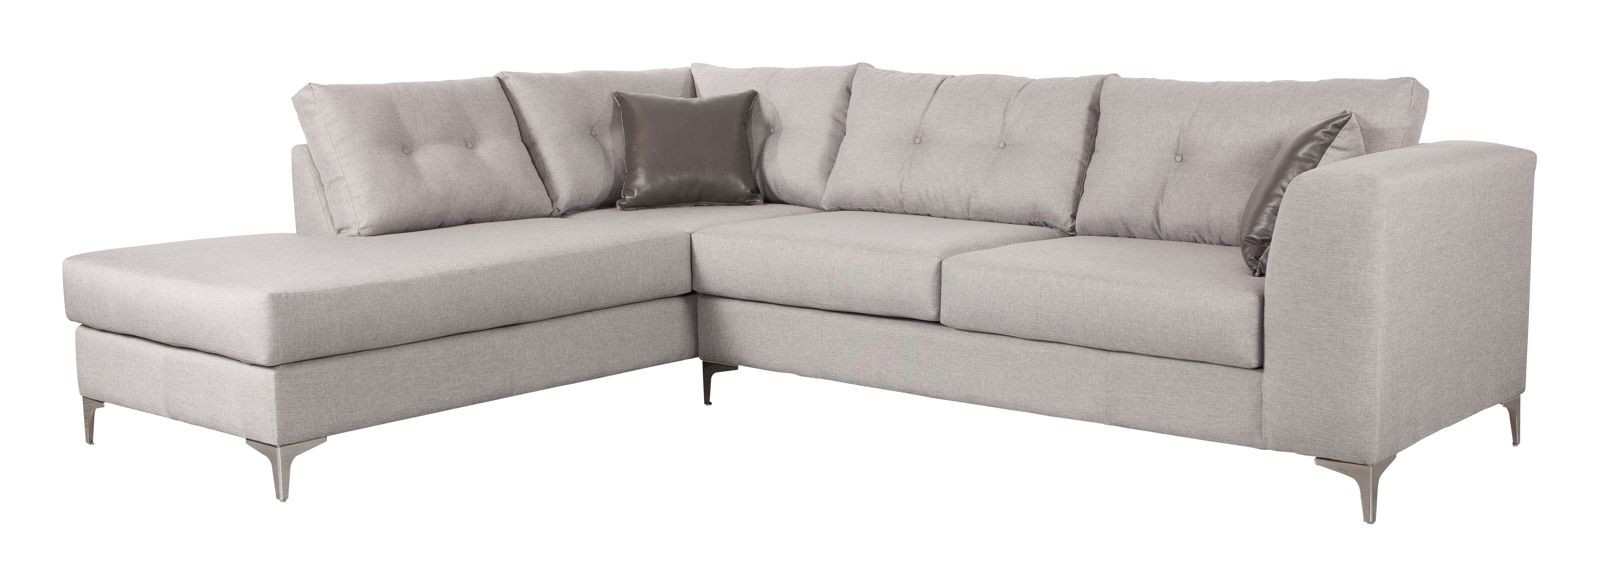 Most Popular Memphis Sectional Sofas In Memphis Sectional Sofazuo Modern (View 14 of 20)